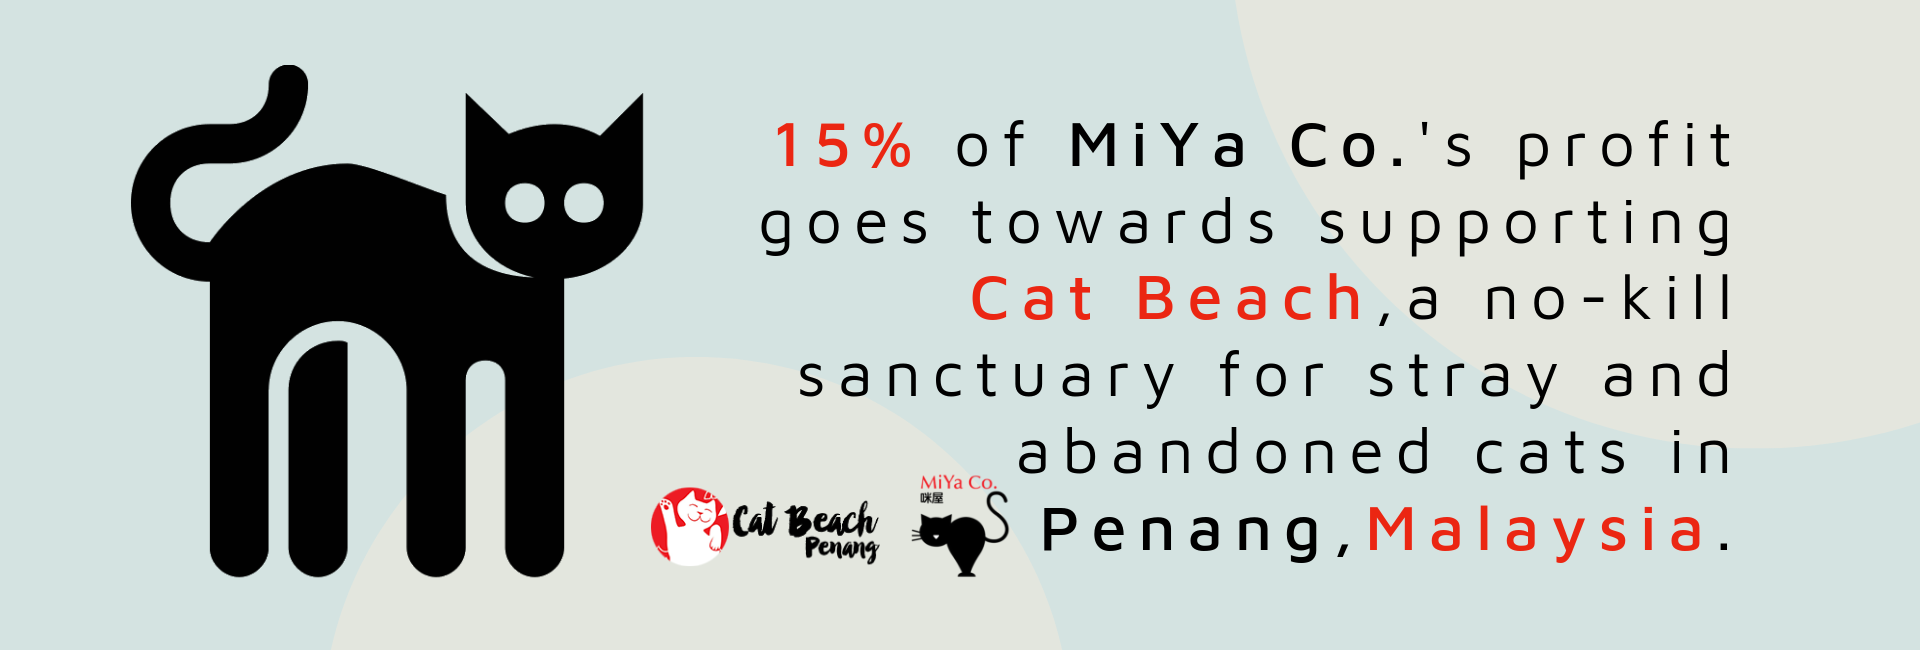 MiYa Co. Gift Shop for cat lovers. A social enterprise that supports cat shelters and rescuers in Malaysia.